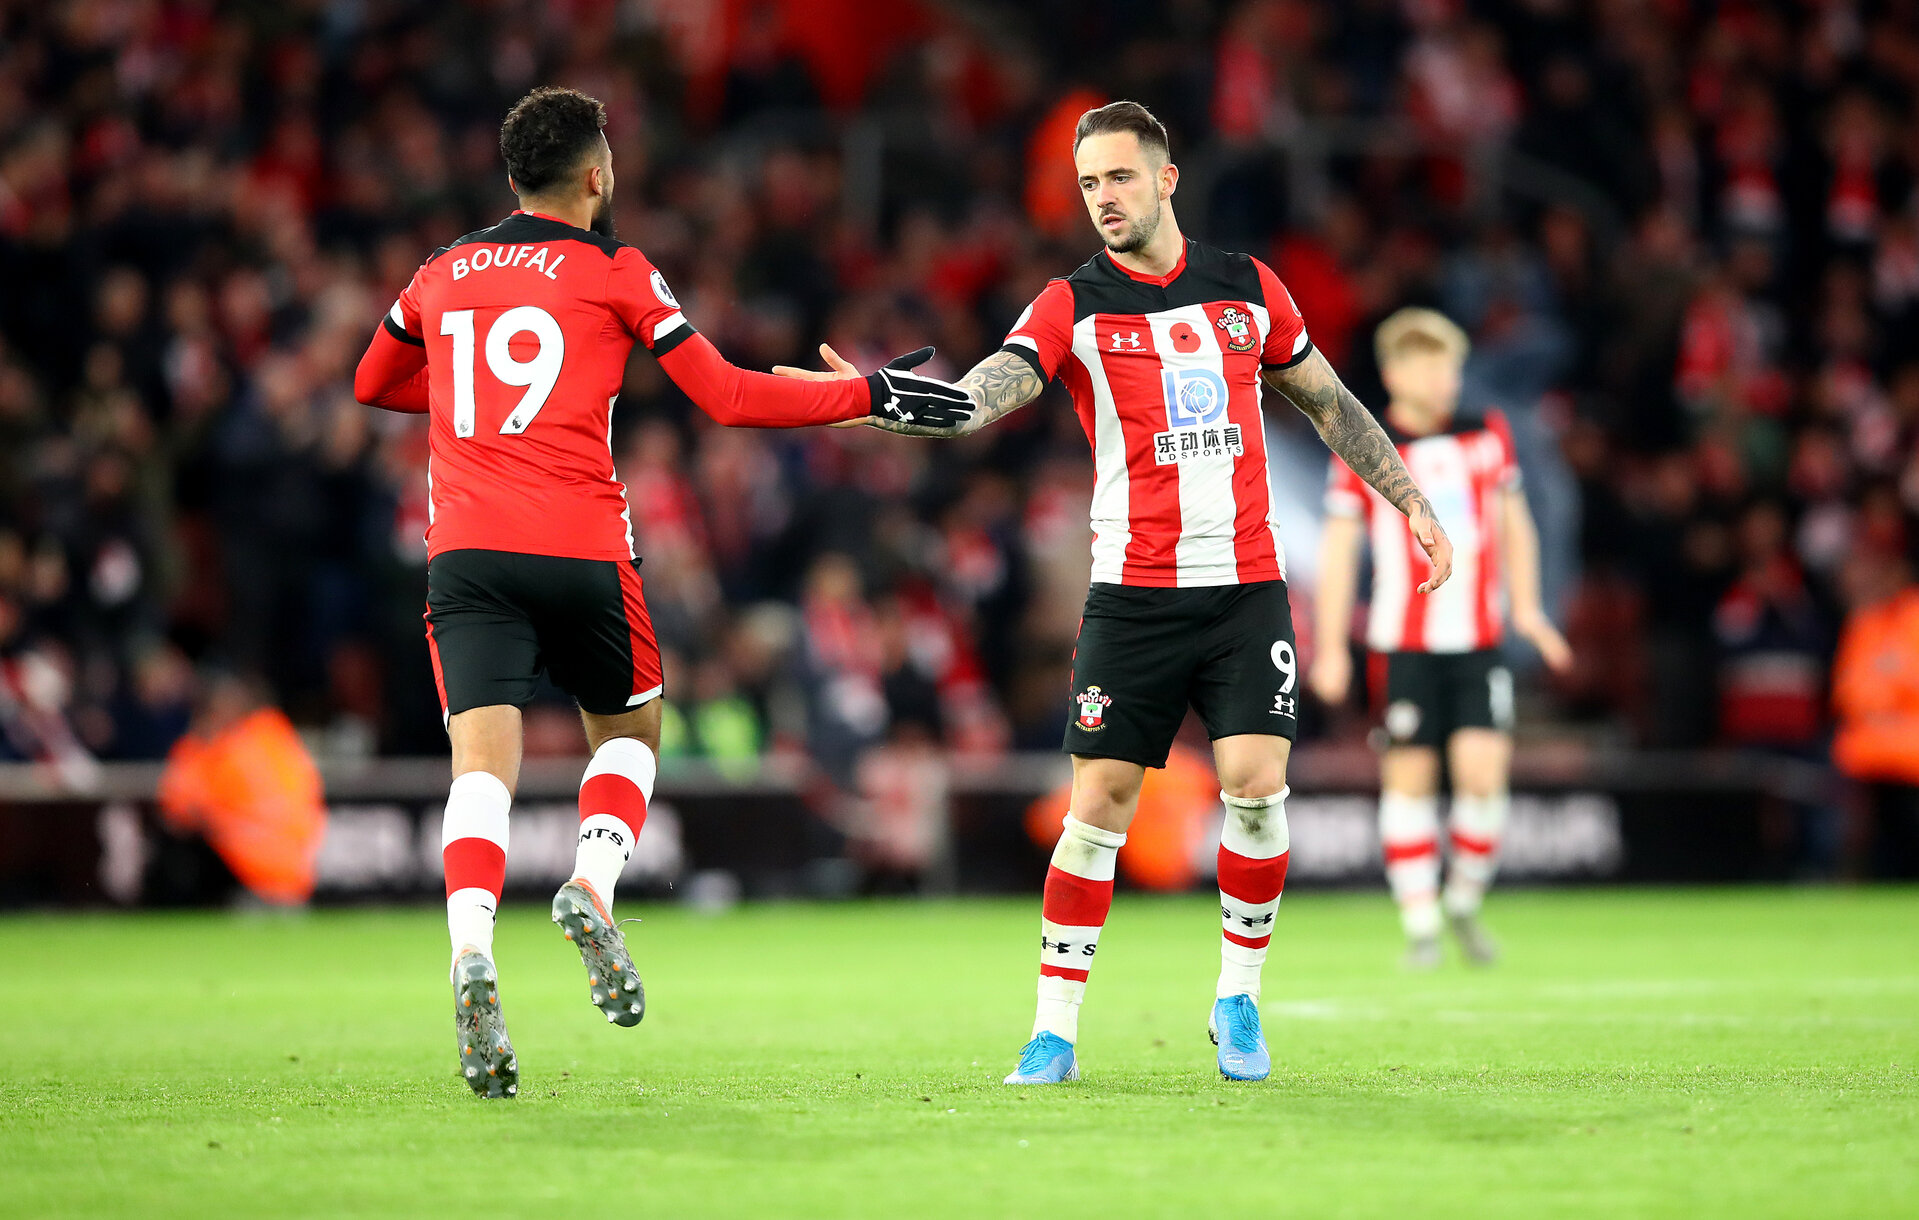 SOUTHAMPTON, ENGLAND - NOVEMBER 09: Sofiane Boufal(L) and Danny Ings of Southampton during the Premier League match between Southampton FC and Everton FC at St Mary's Stadium on November 09, 2019 in Southampton, United Kingdom. (Photo by Matt Watson/Southampton FC via Getty Images)